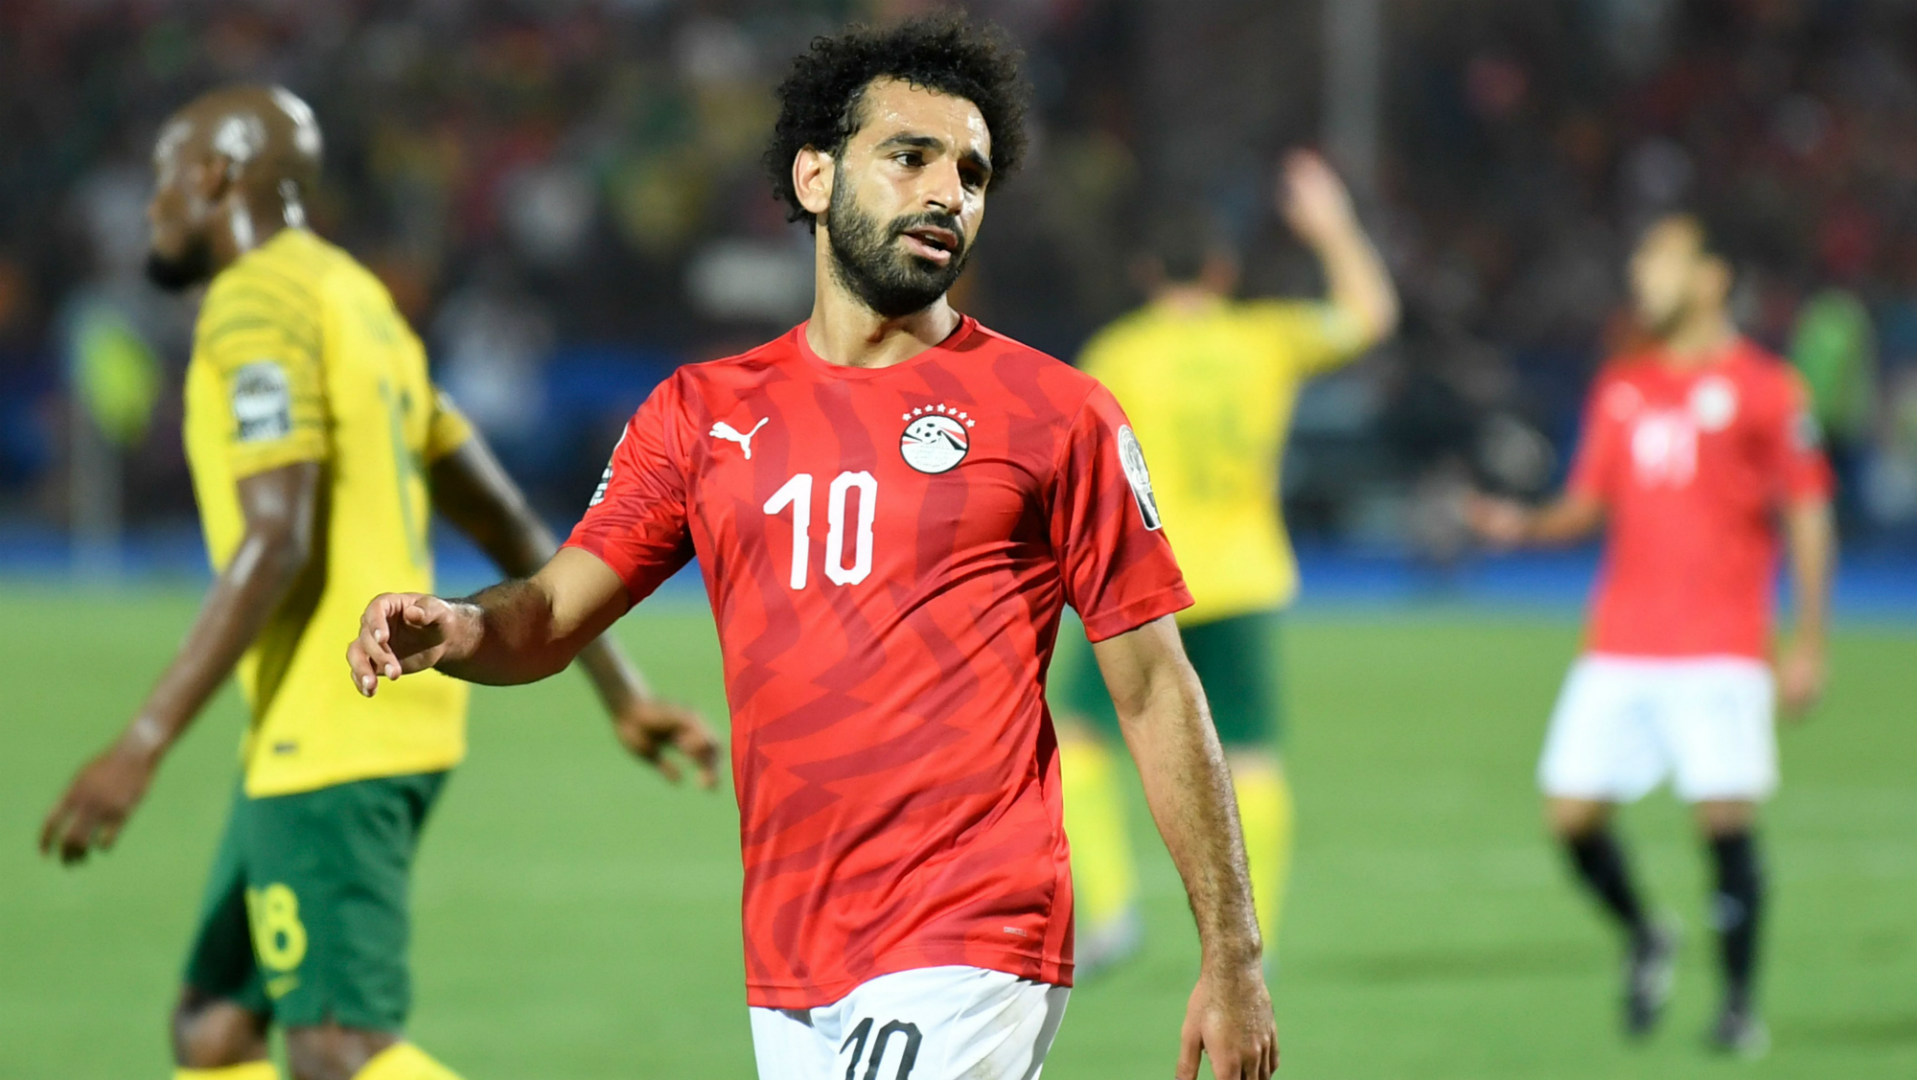 Afcon 2019: Salah disappointed to let supporters of Egypt down